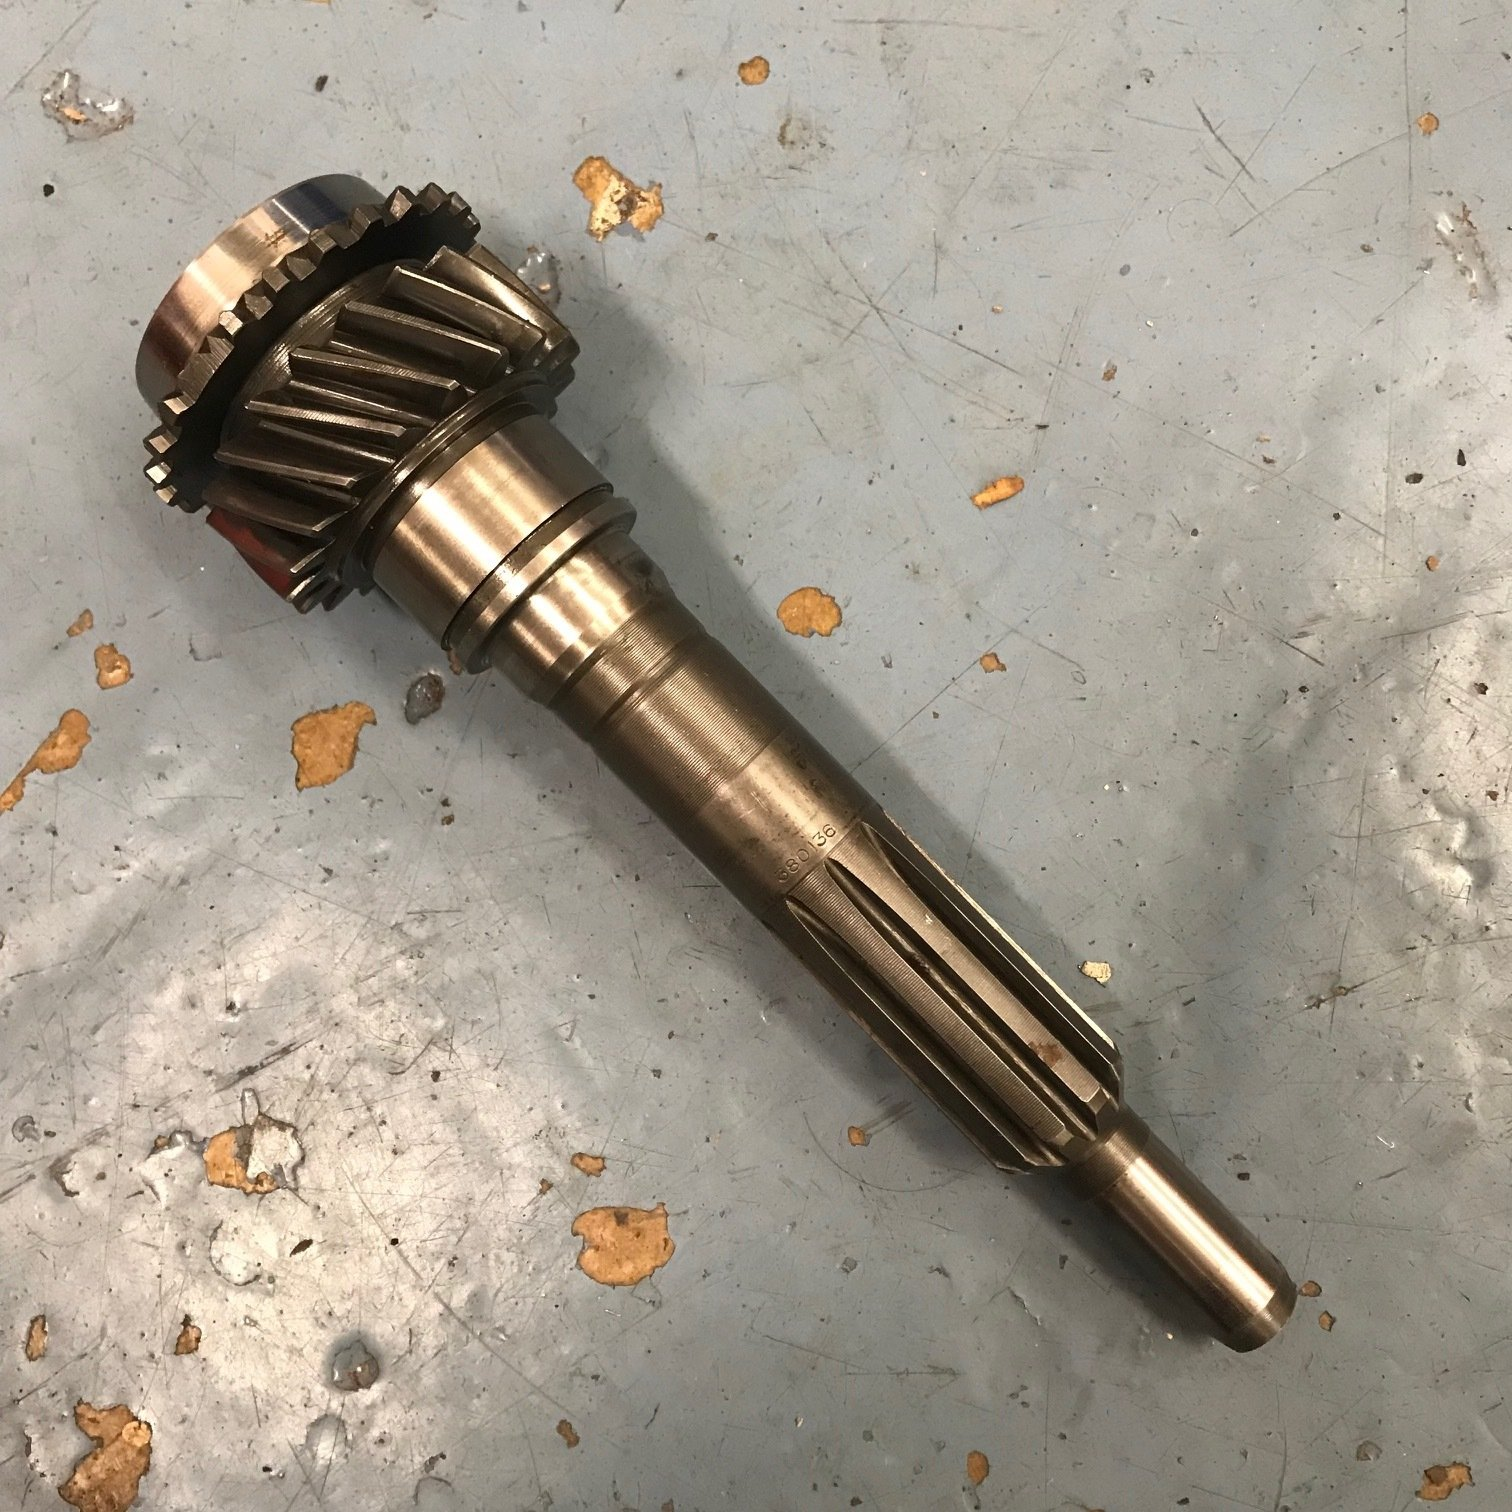 Volvo M40 1st motion shaft 19 tooth (used) 380136 TRV203B